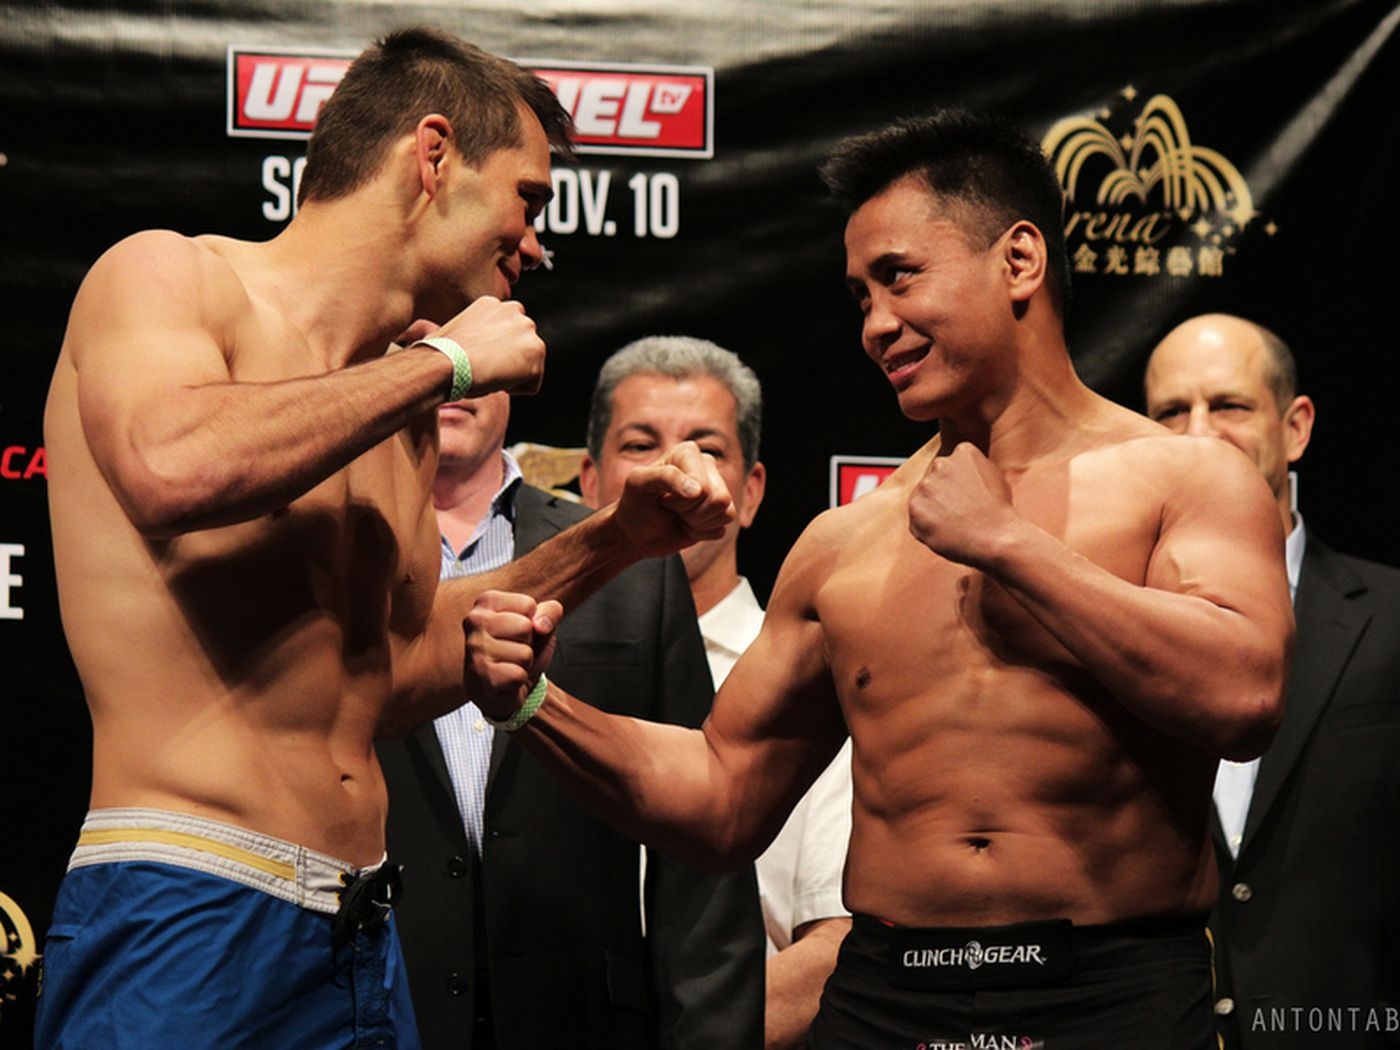 Ufc On Fuel 6 Fight Card Primer Rich Franklin Vs Cung Le Bloody